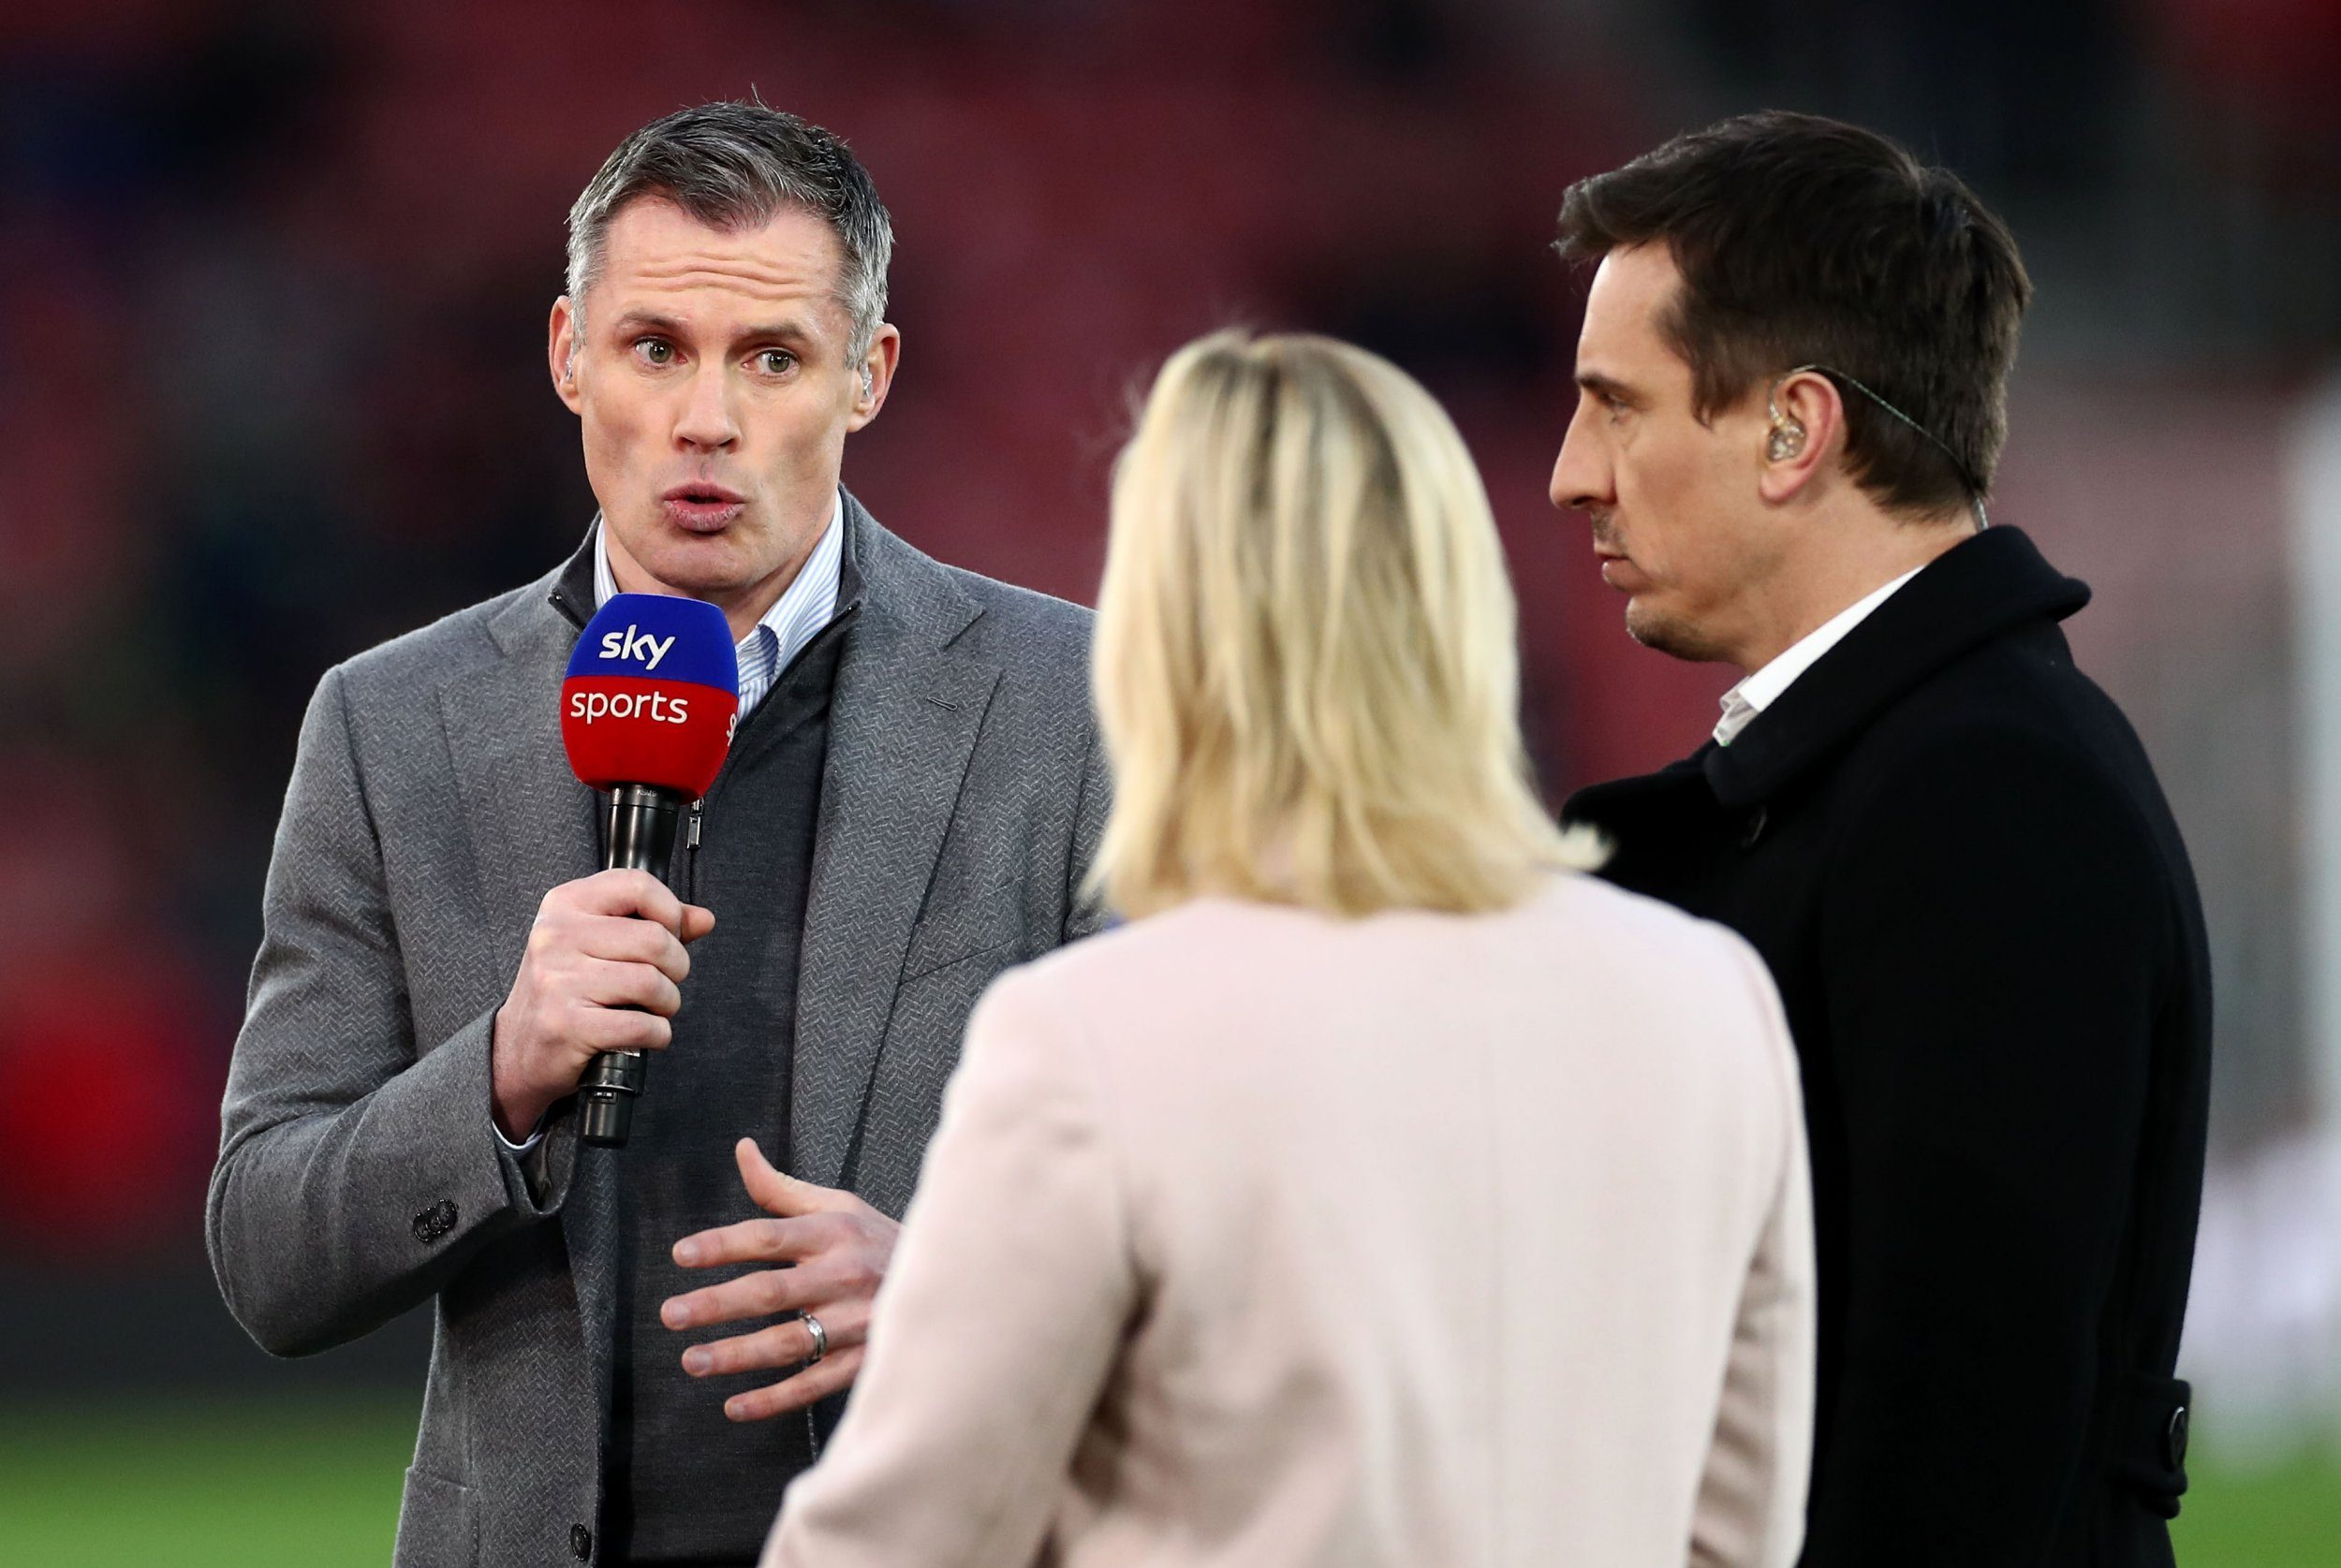 Gary Neville and Jamie Carragher agree Arsenal not favourites to finish in top four ahead of Man Utd or Chelsea